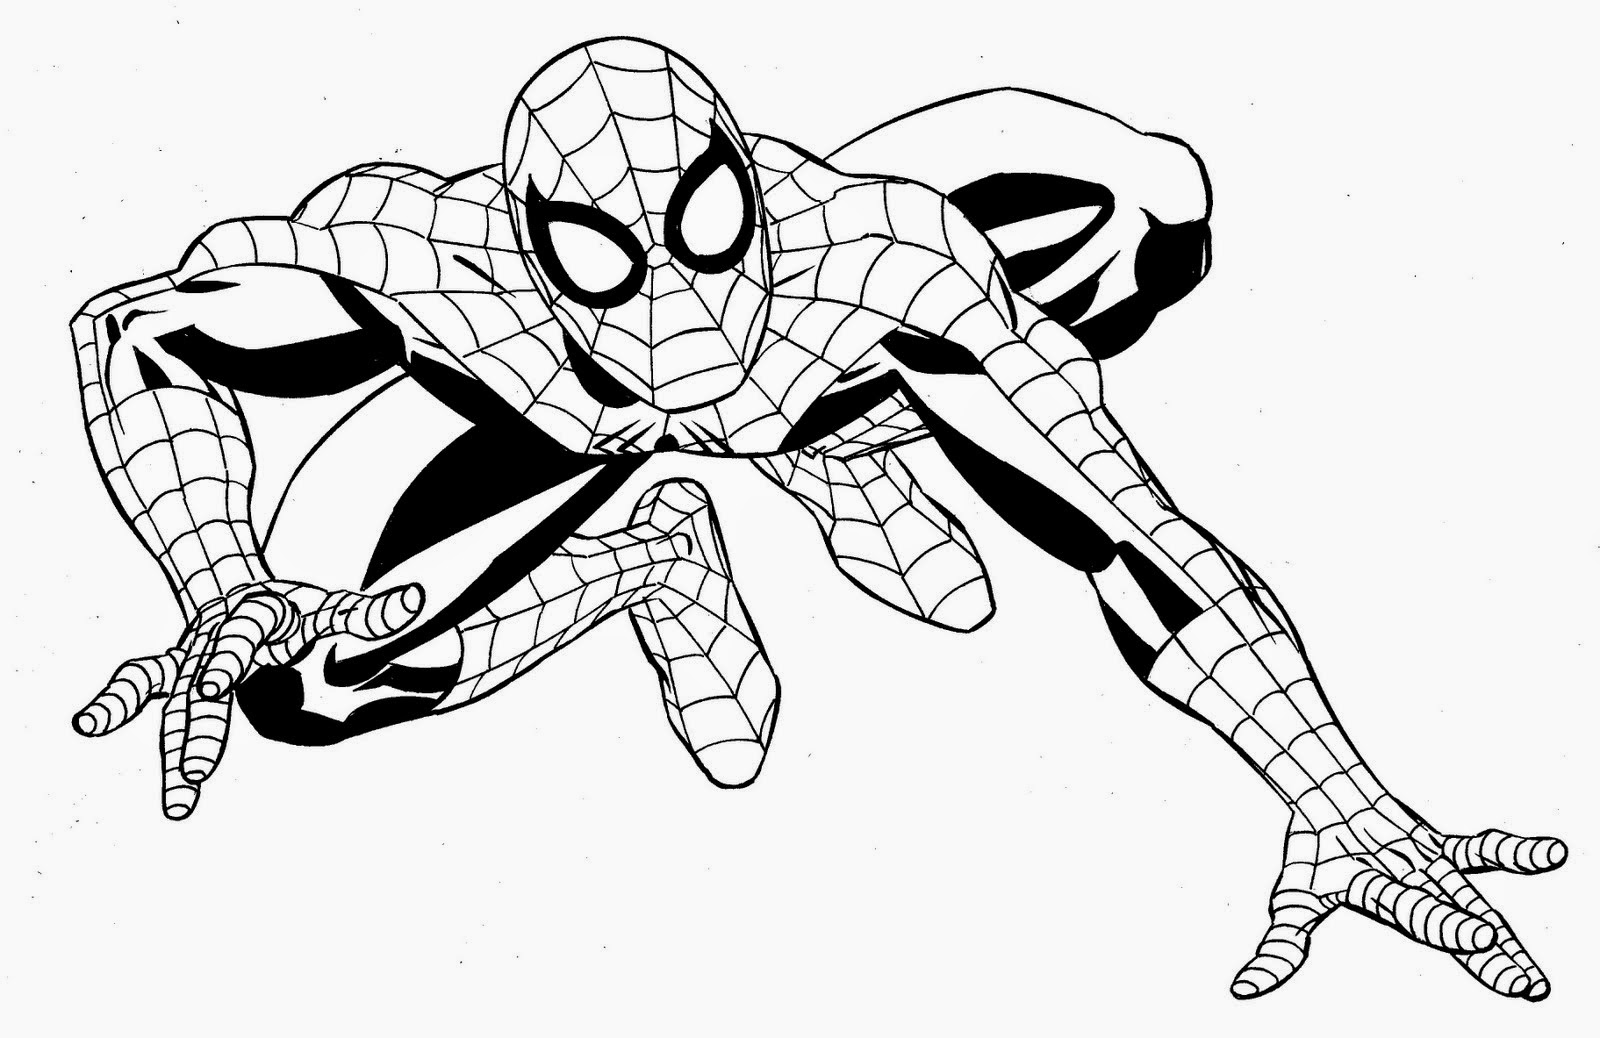 super hero coloring page superhero coloring pages to download and print for free super coloring hero page